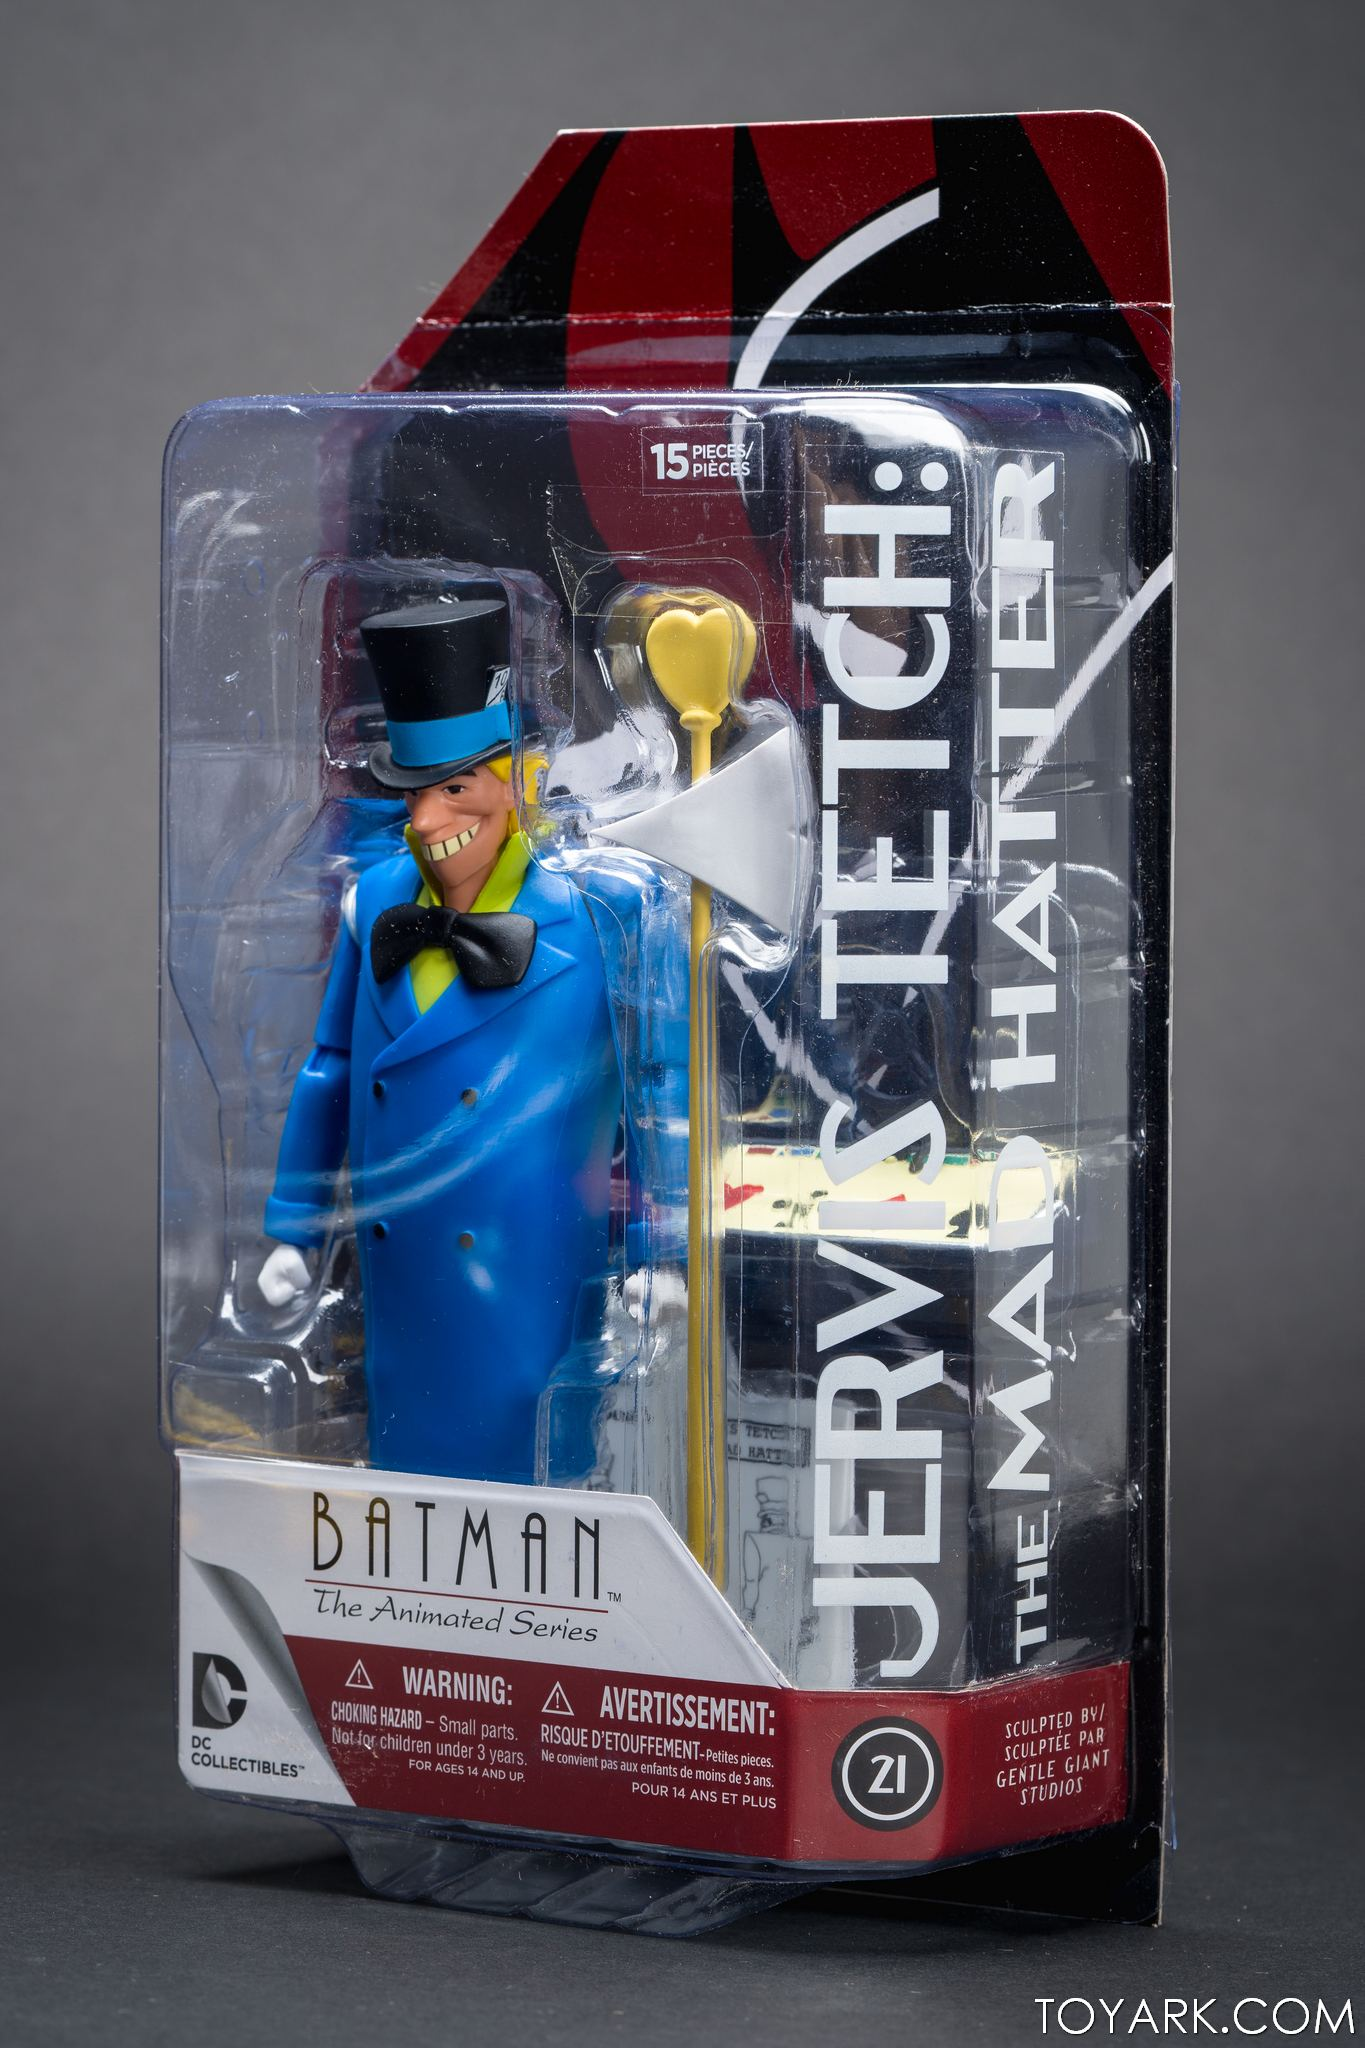 DC Comics #21 Jervis Tetch Mad Hatter BATMAN the animated series action figure